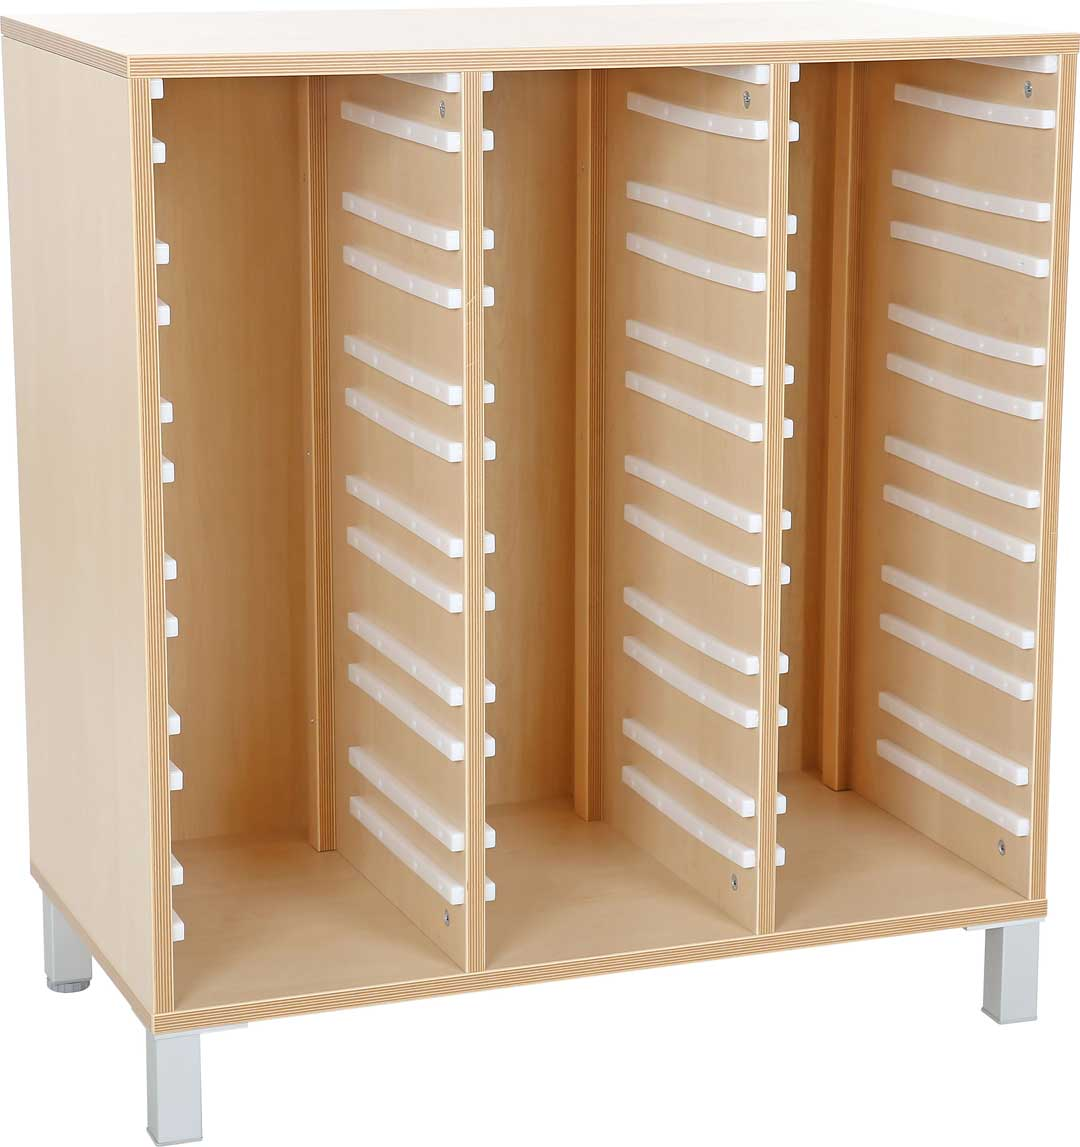 M Cabinet for Plastic Containers 3 Rows with Legs